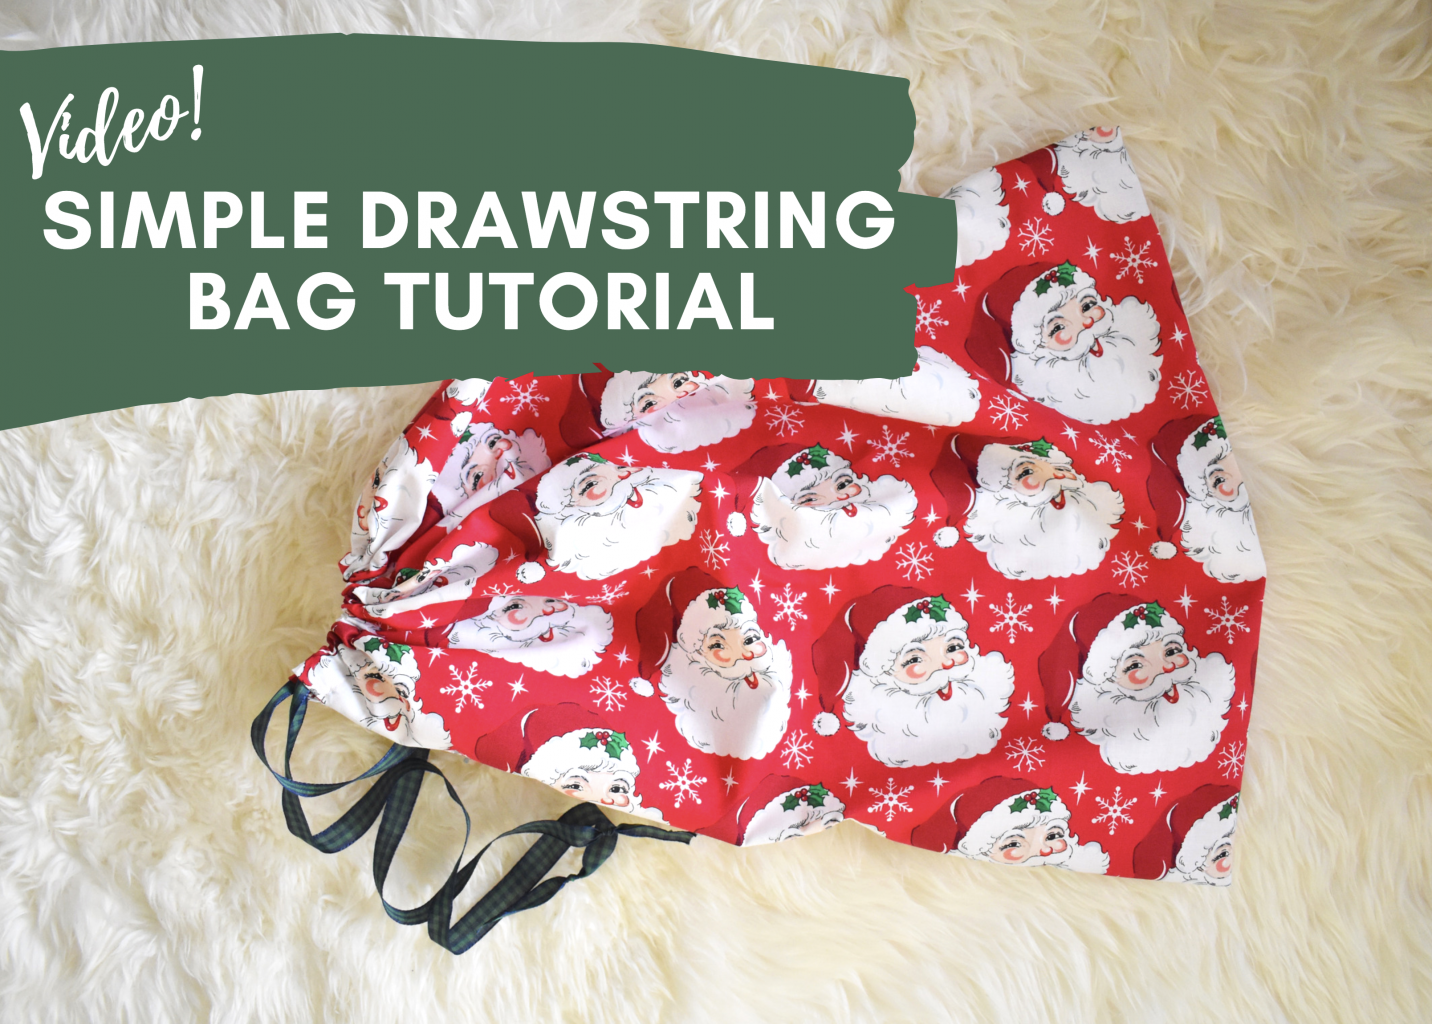 Learn to make a simple drawstring bag. Perfect beginner project!